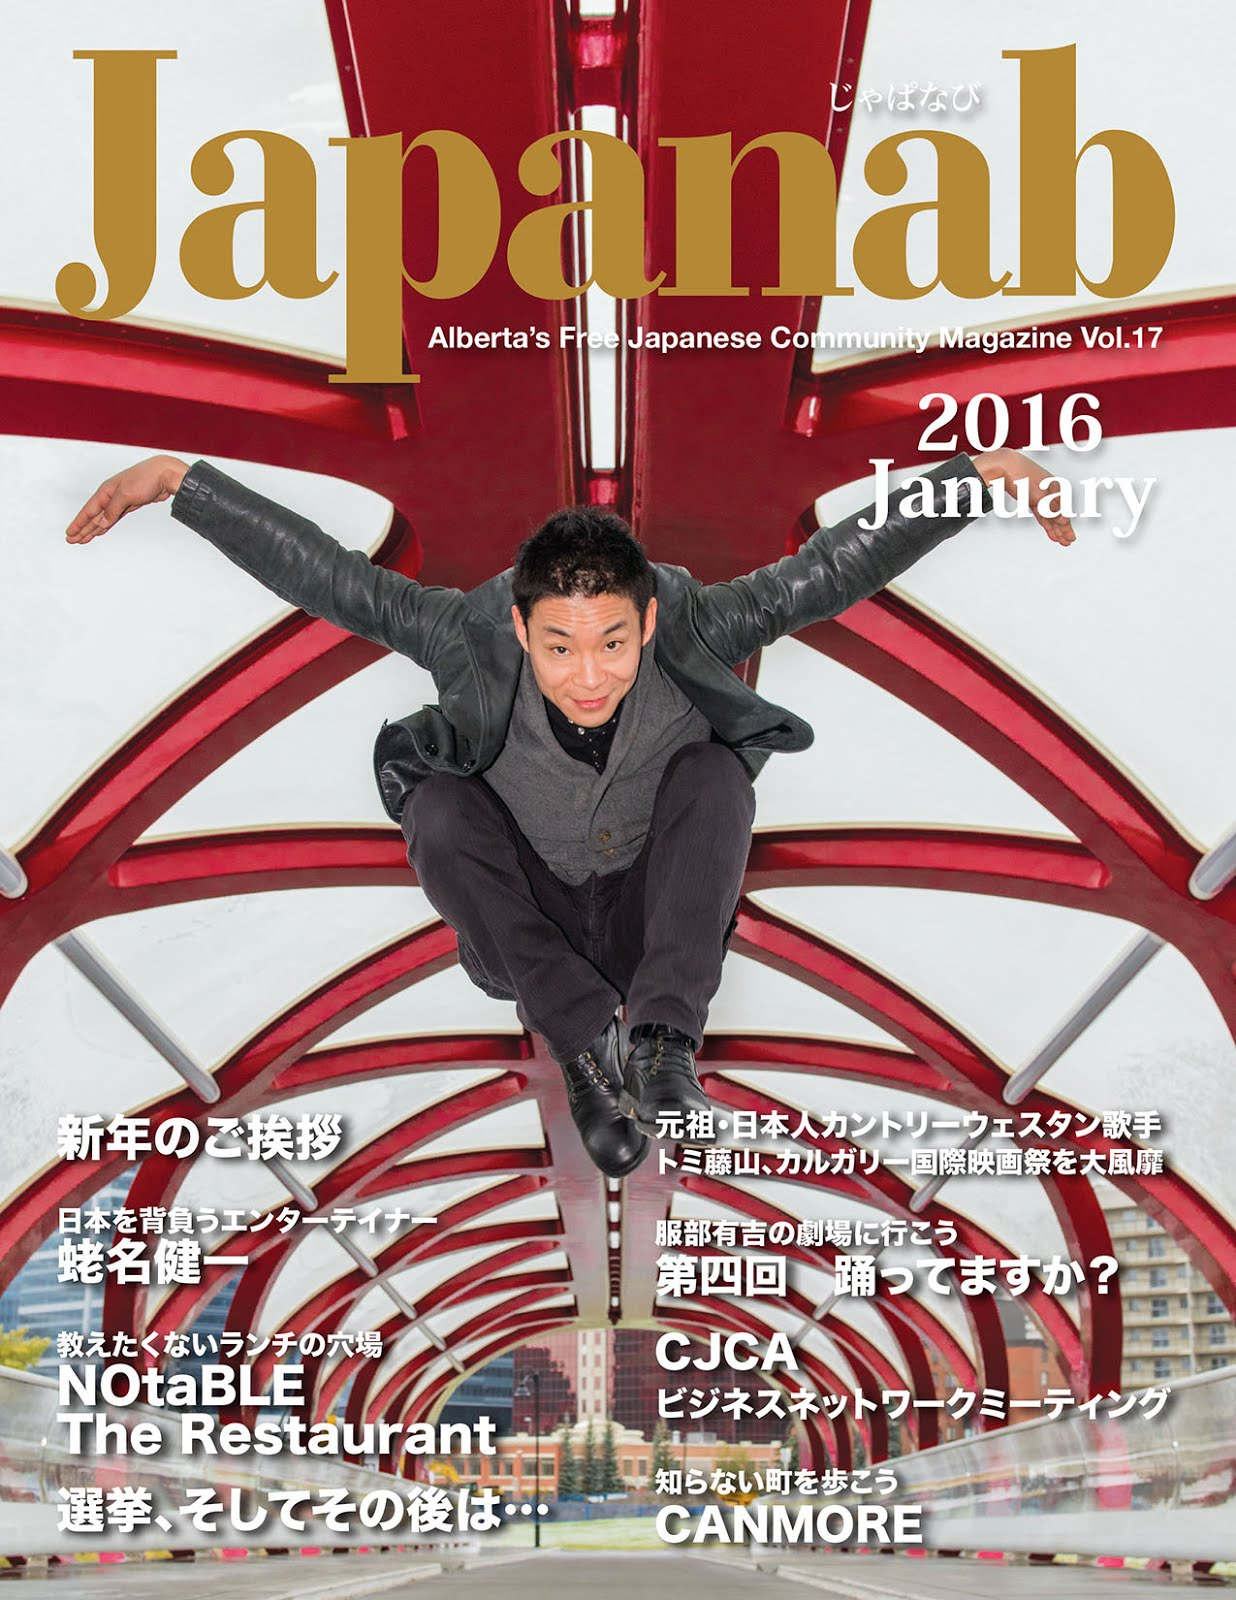 Japanab Vol. 17 - 2016 January